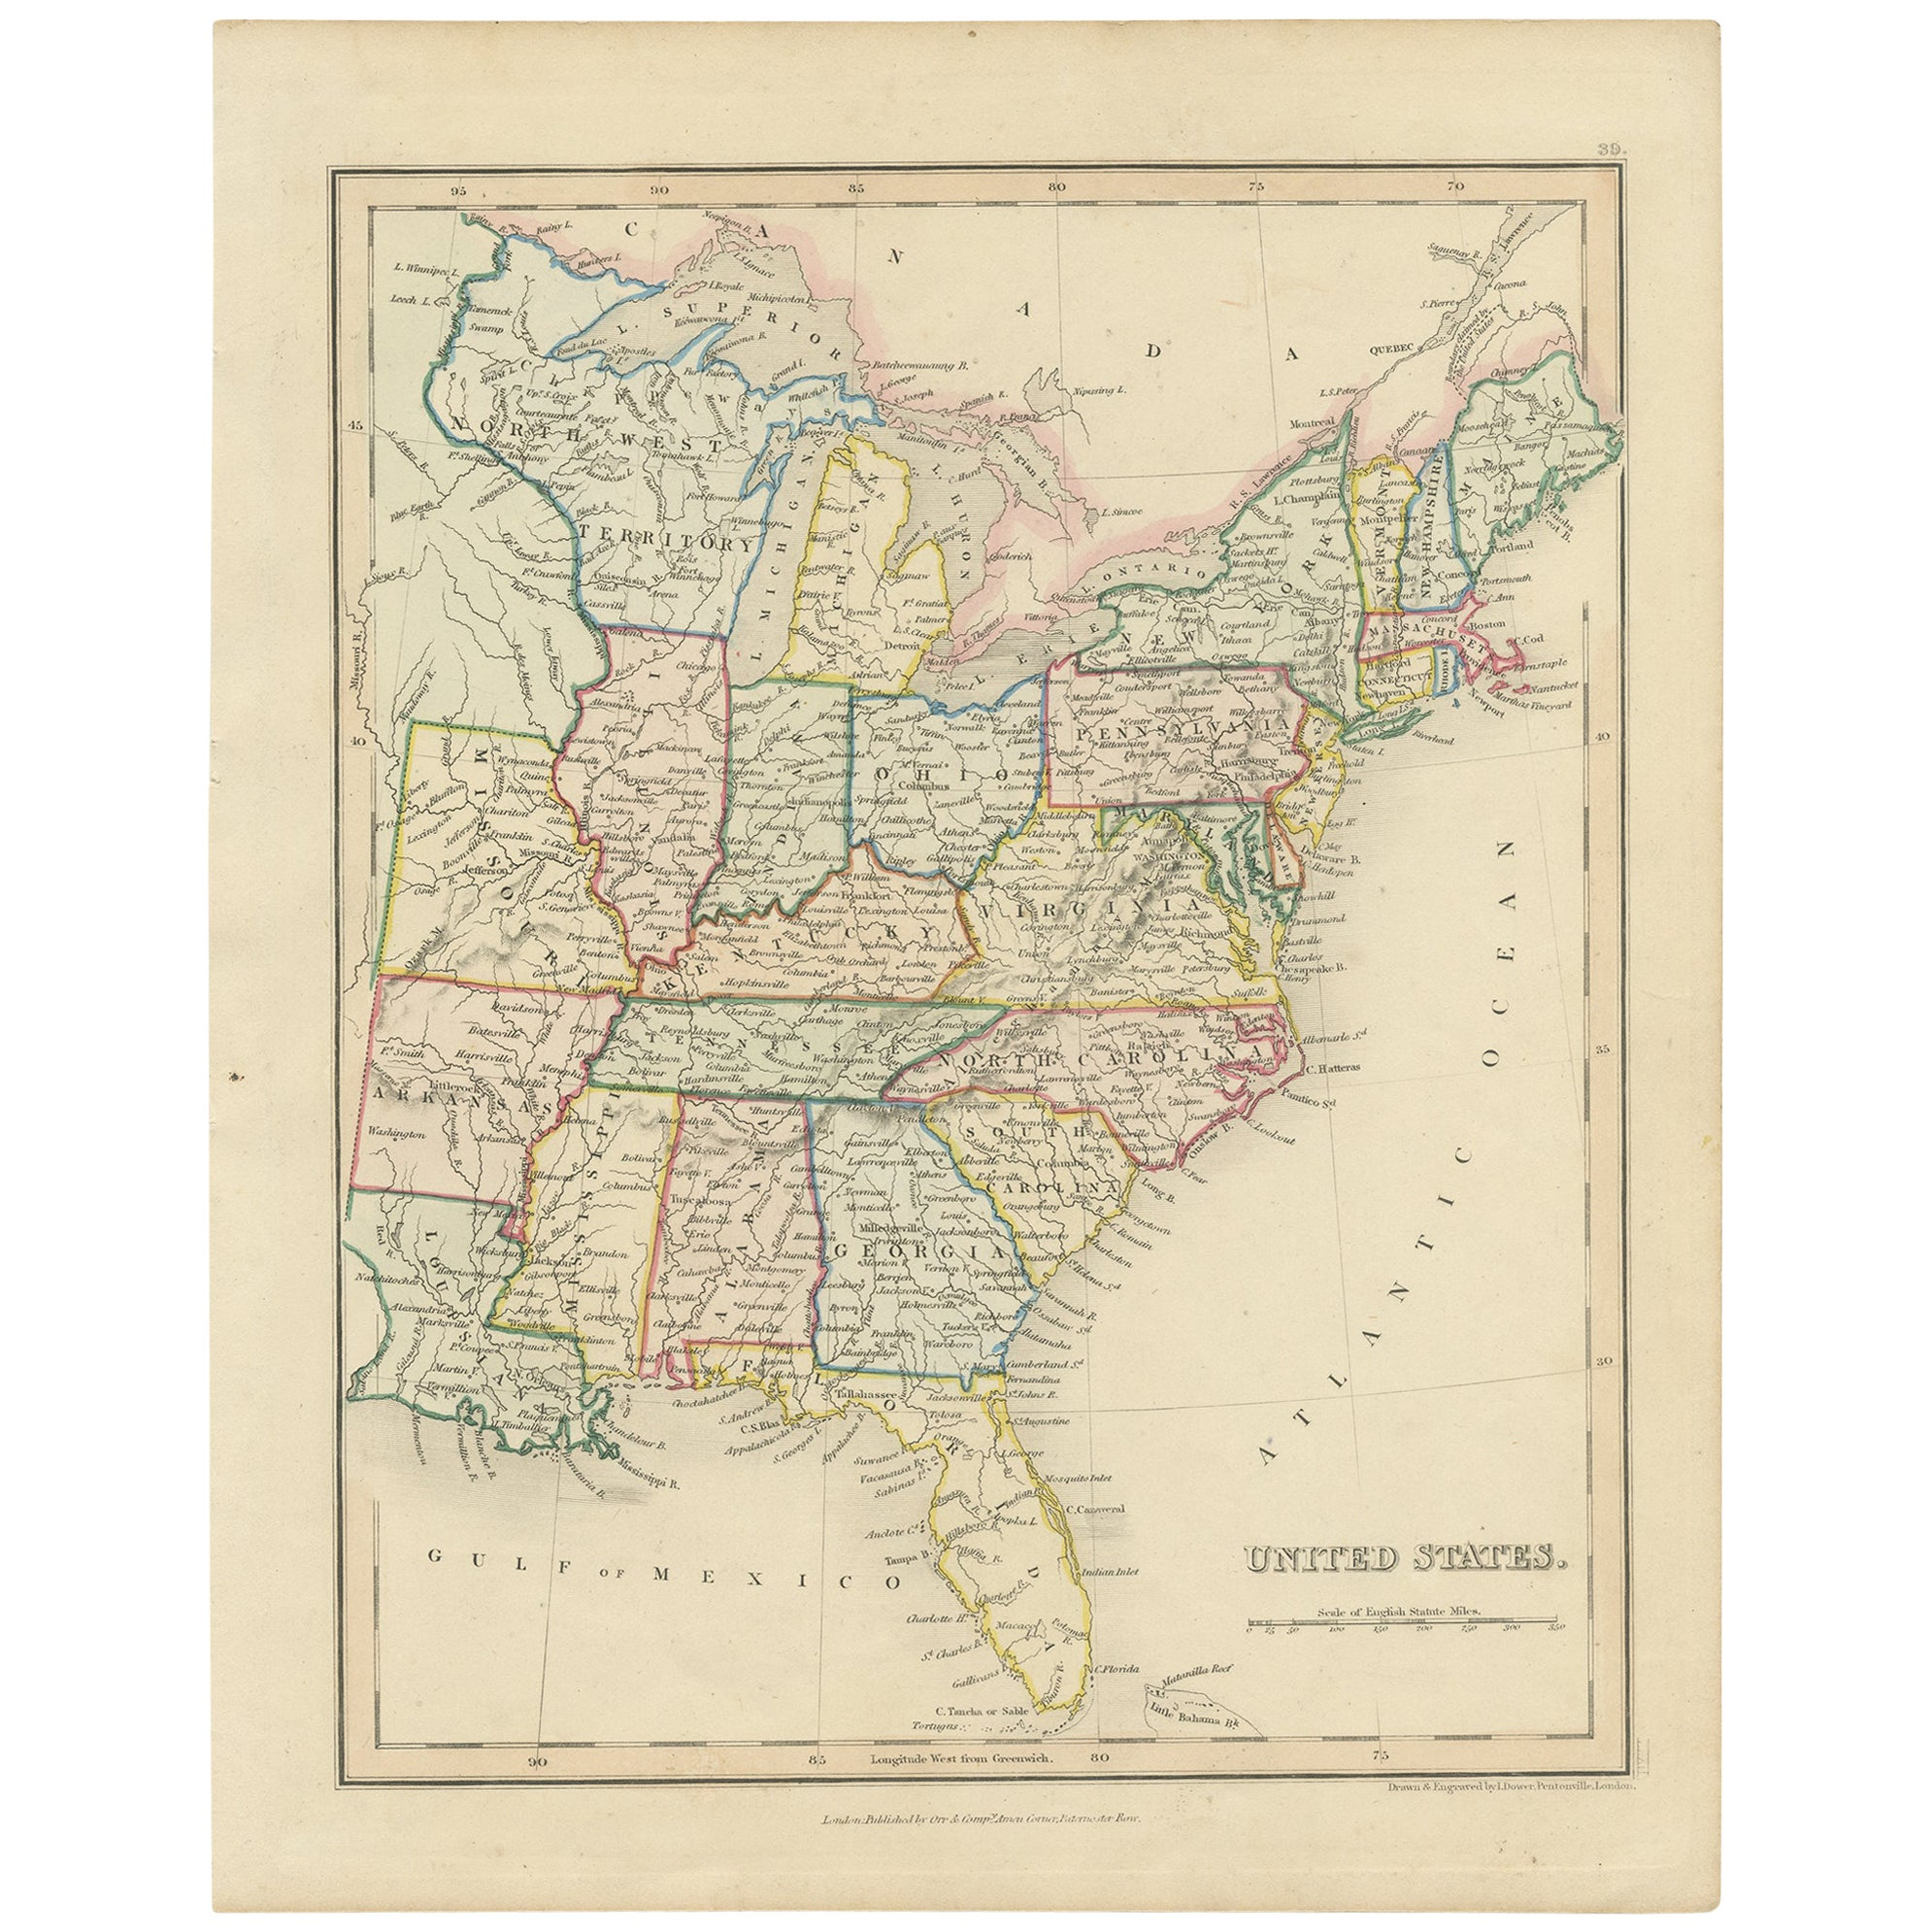 Antique Map of the United States by Dower, circa 1845